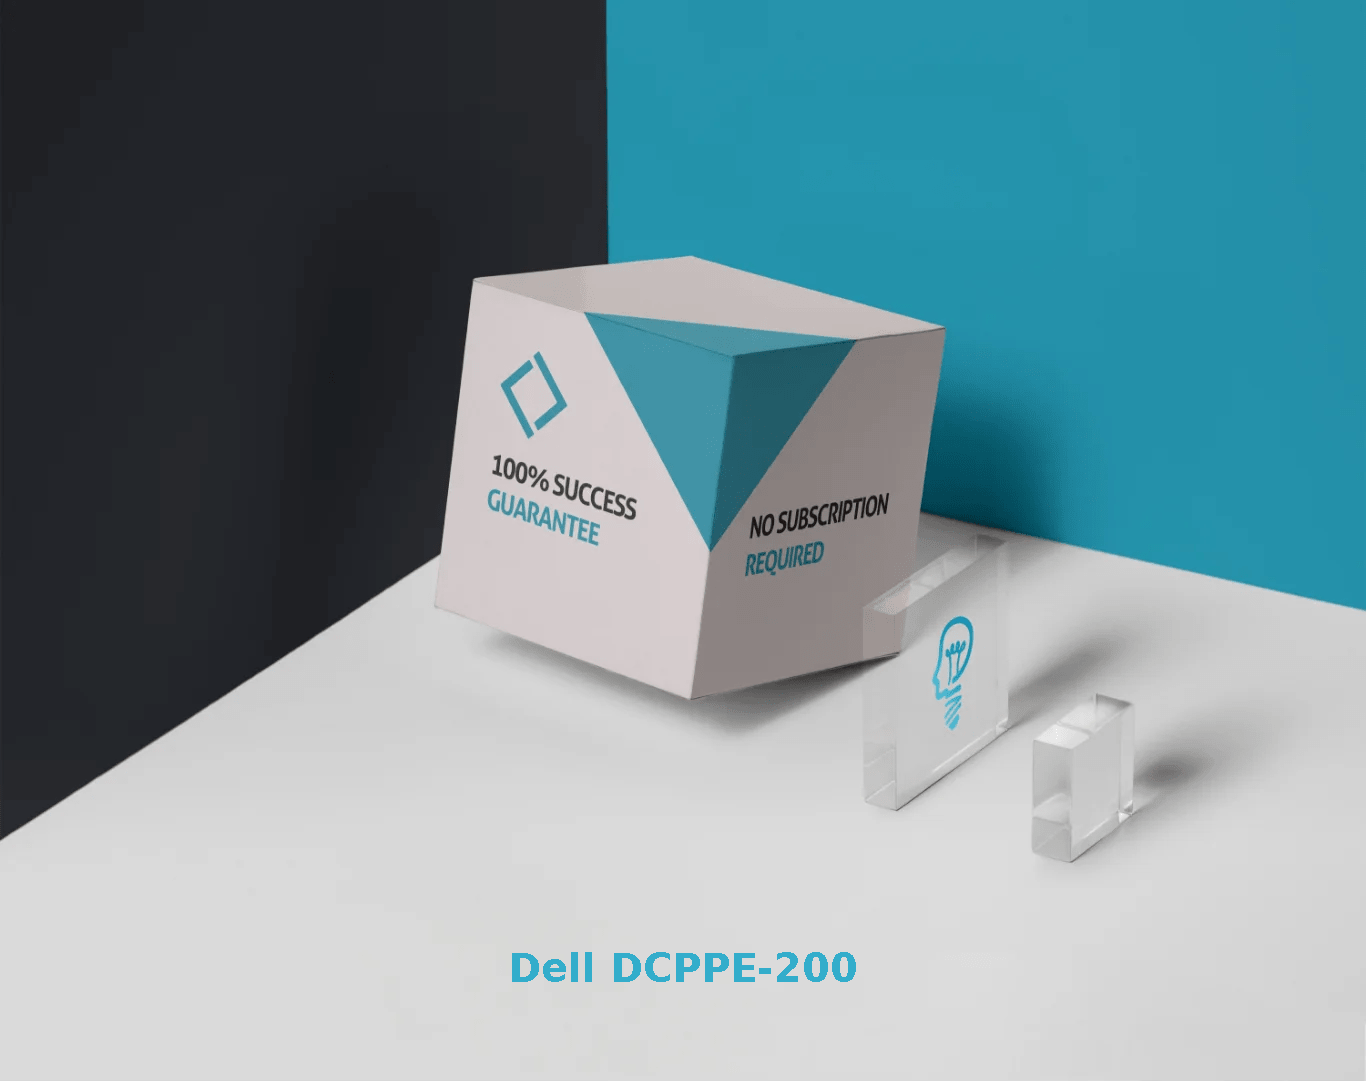 Dell DCPPE-200 Exams